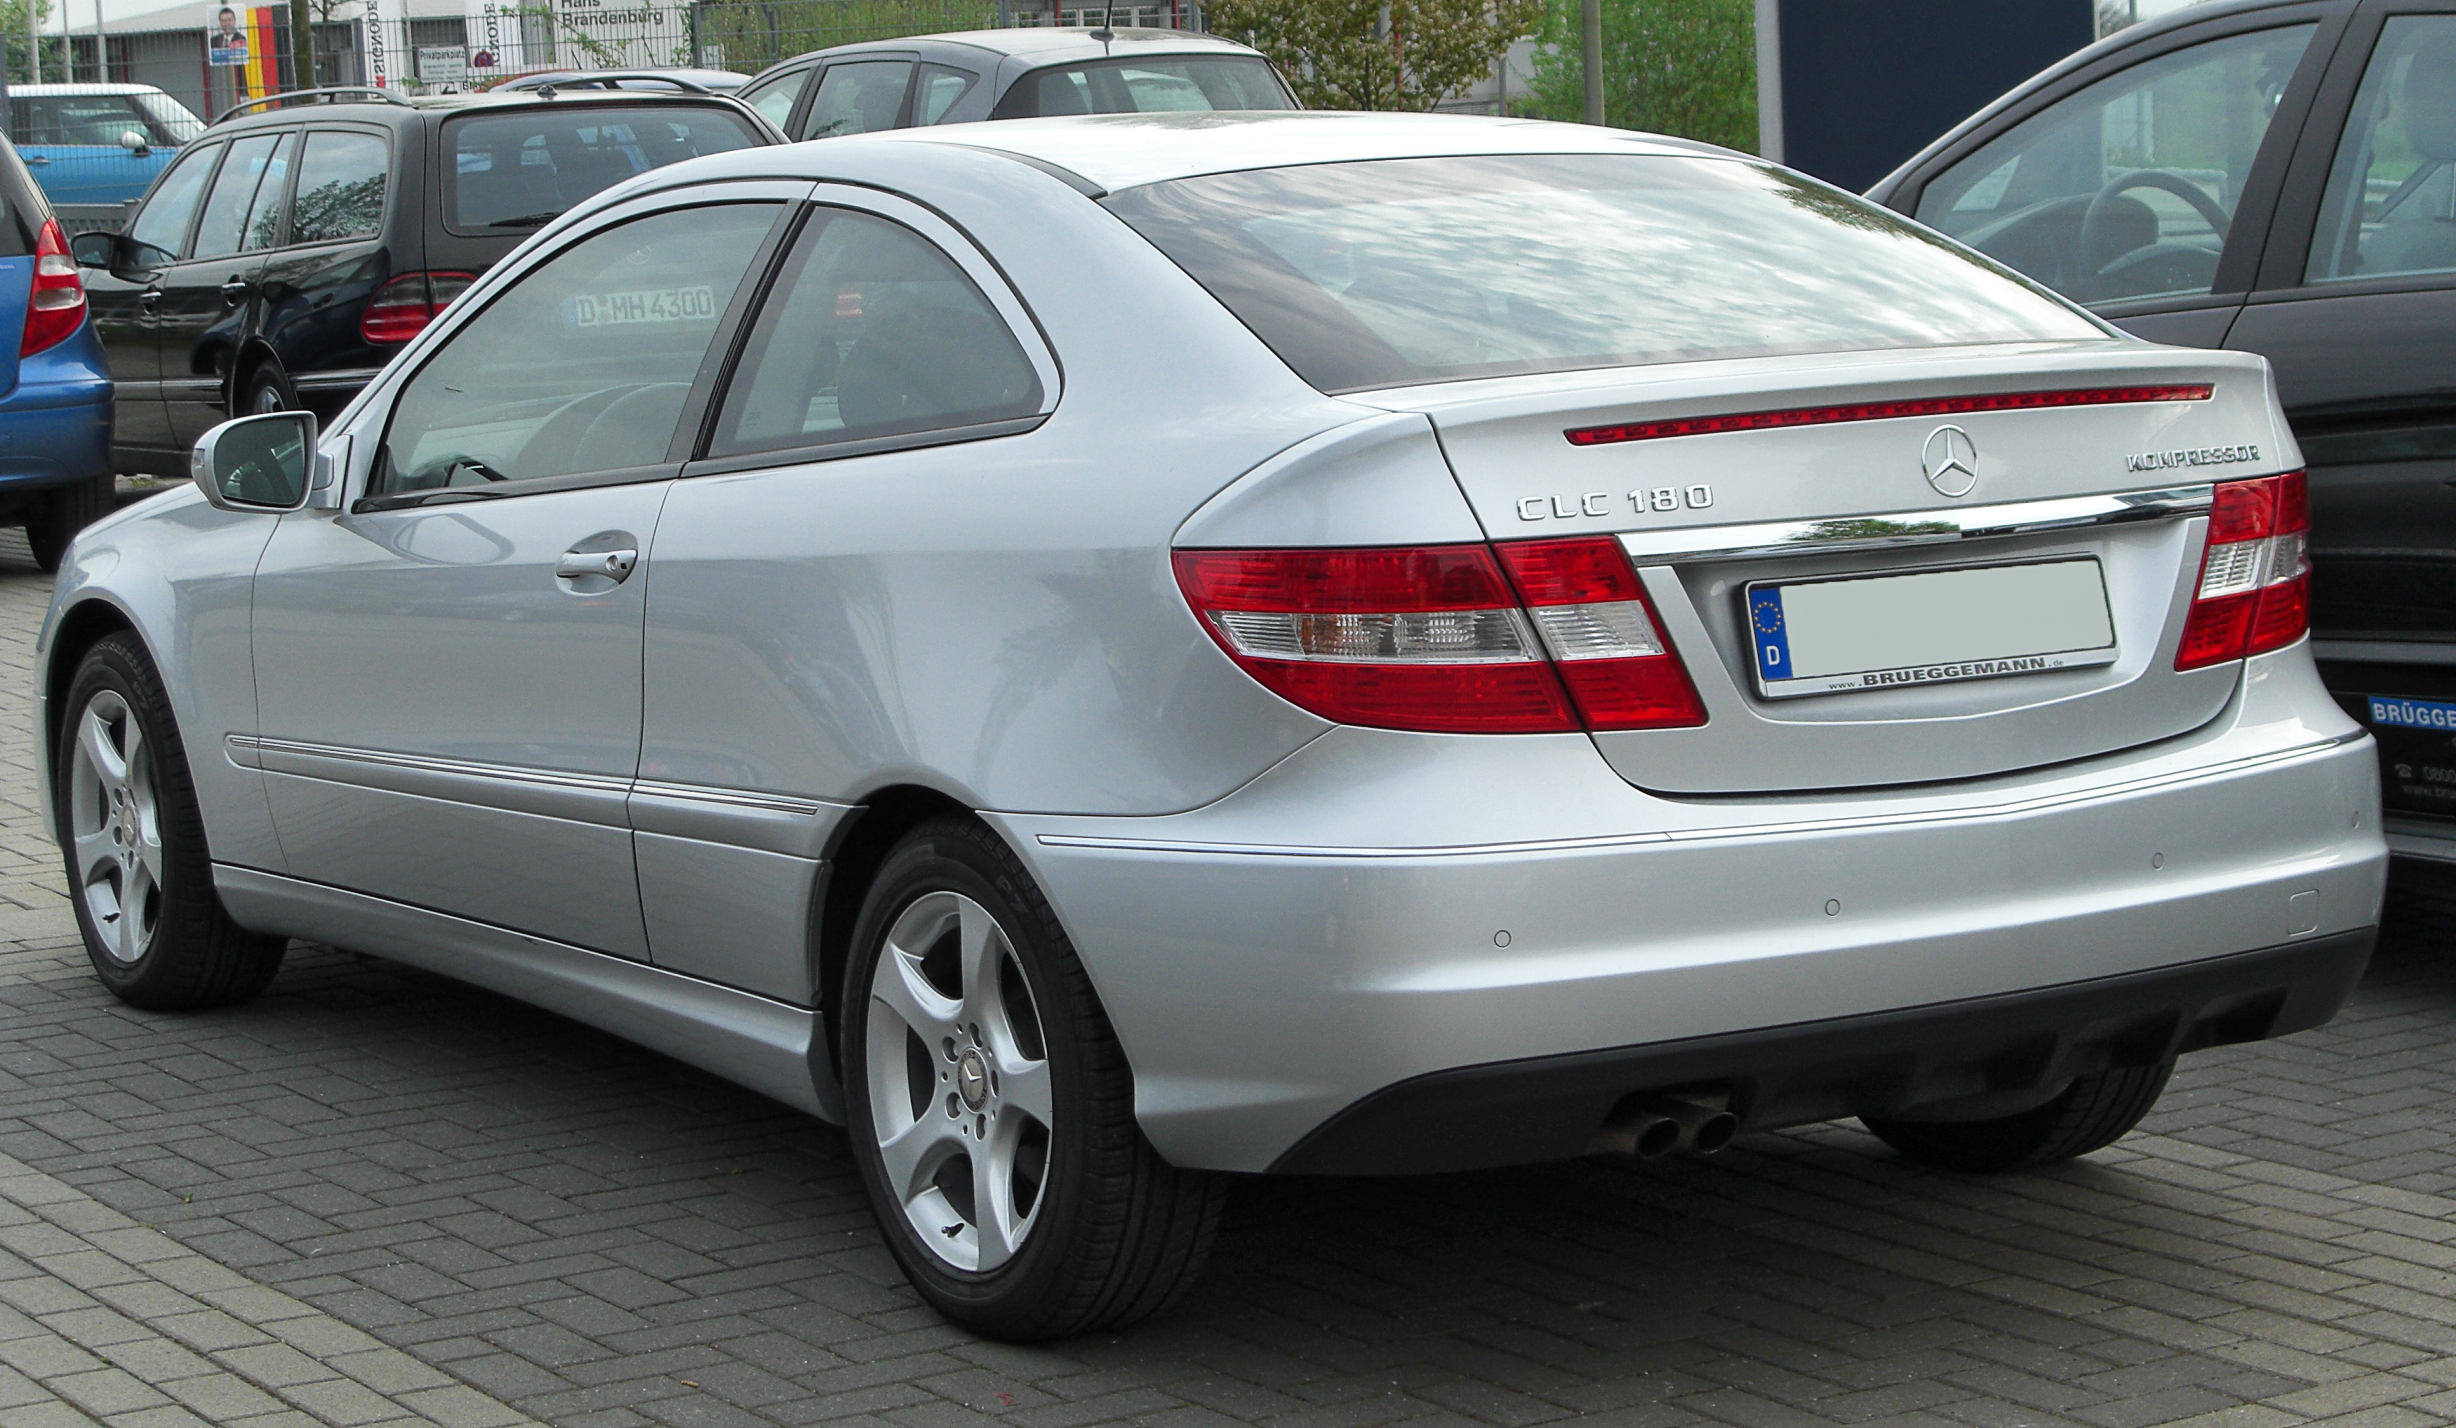 http://upload.wikimedia.org/wikipedia/commons/c/c6/Mercedes_CLC_180_Kompressor_rear_20100425.jpg